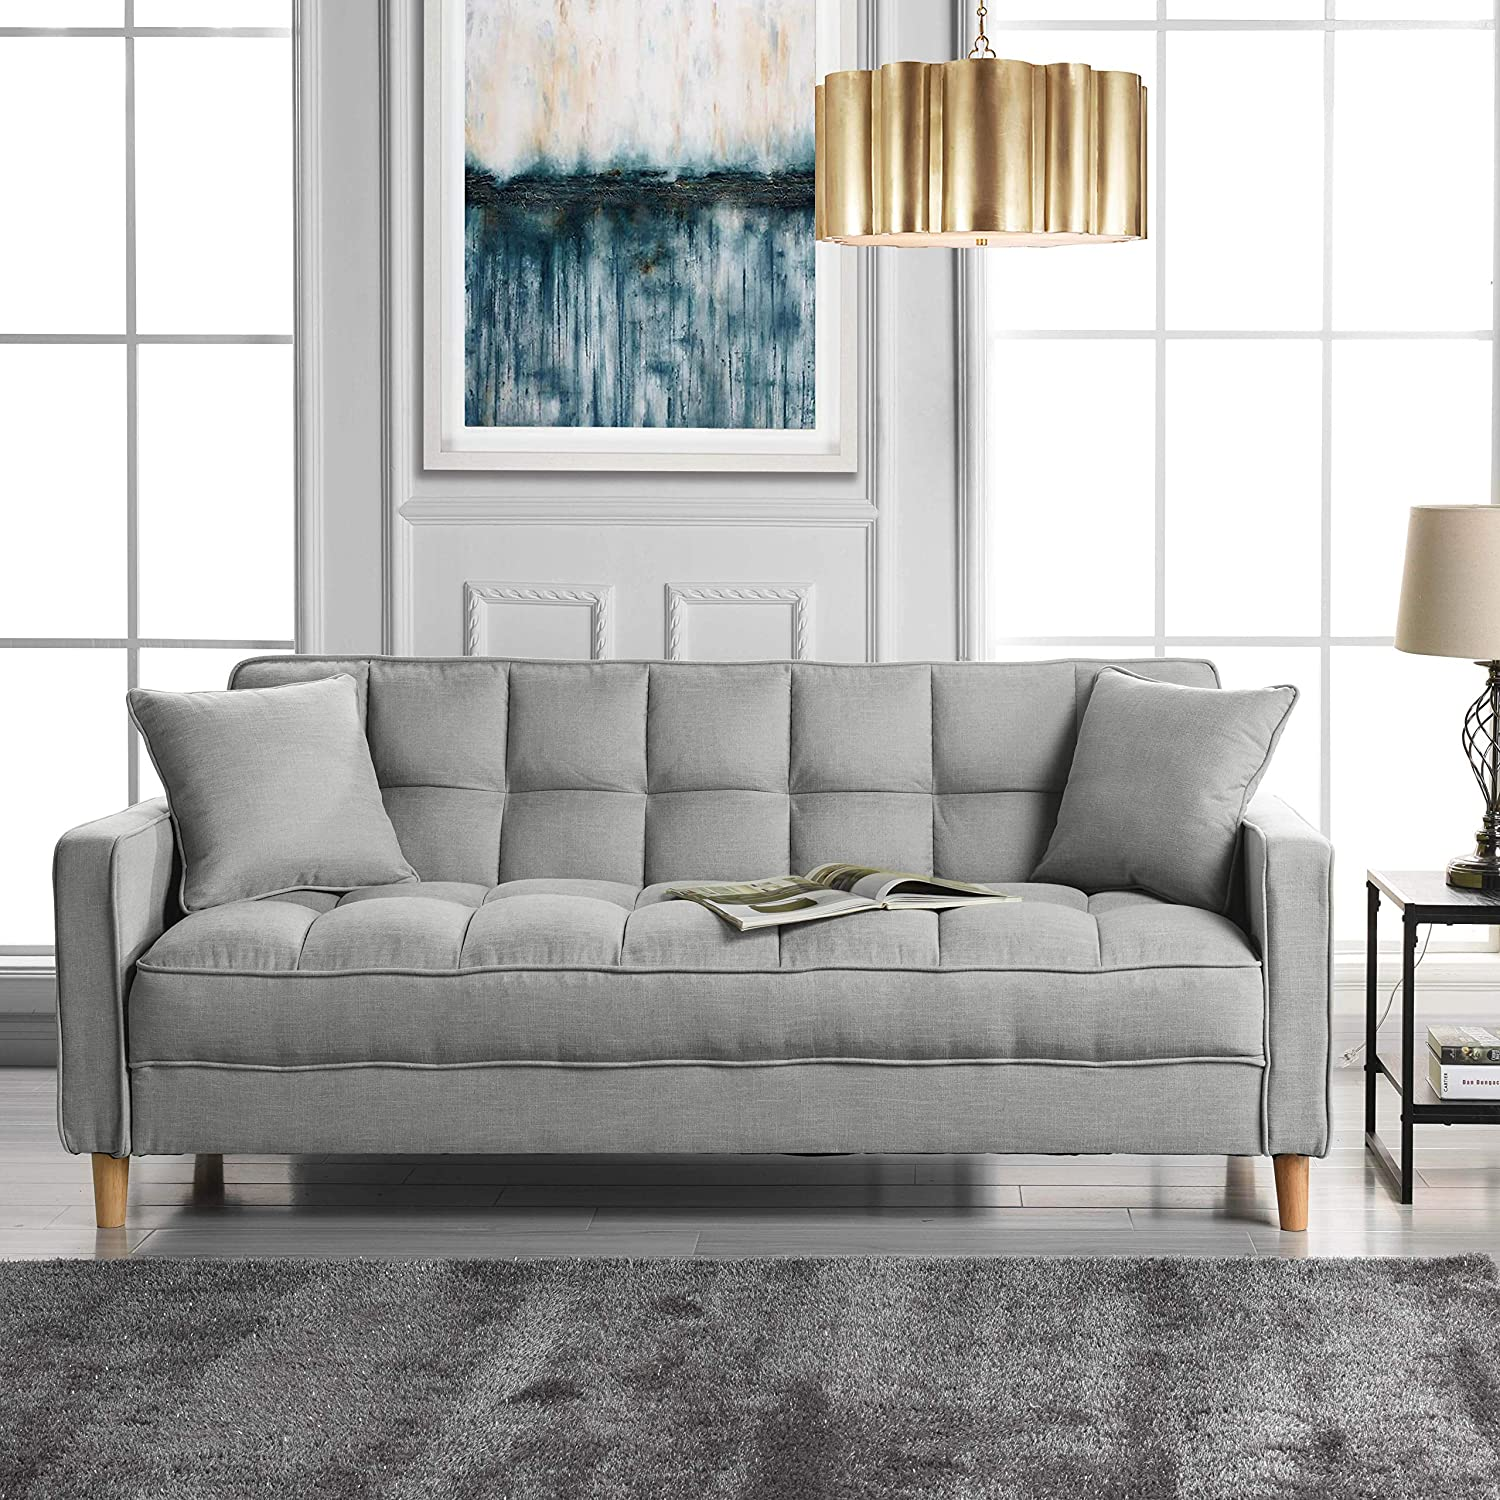 Amazon com modern linen fabric tufted small space living room sofa couch light grey kitchen dining